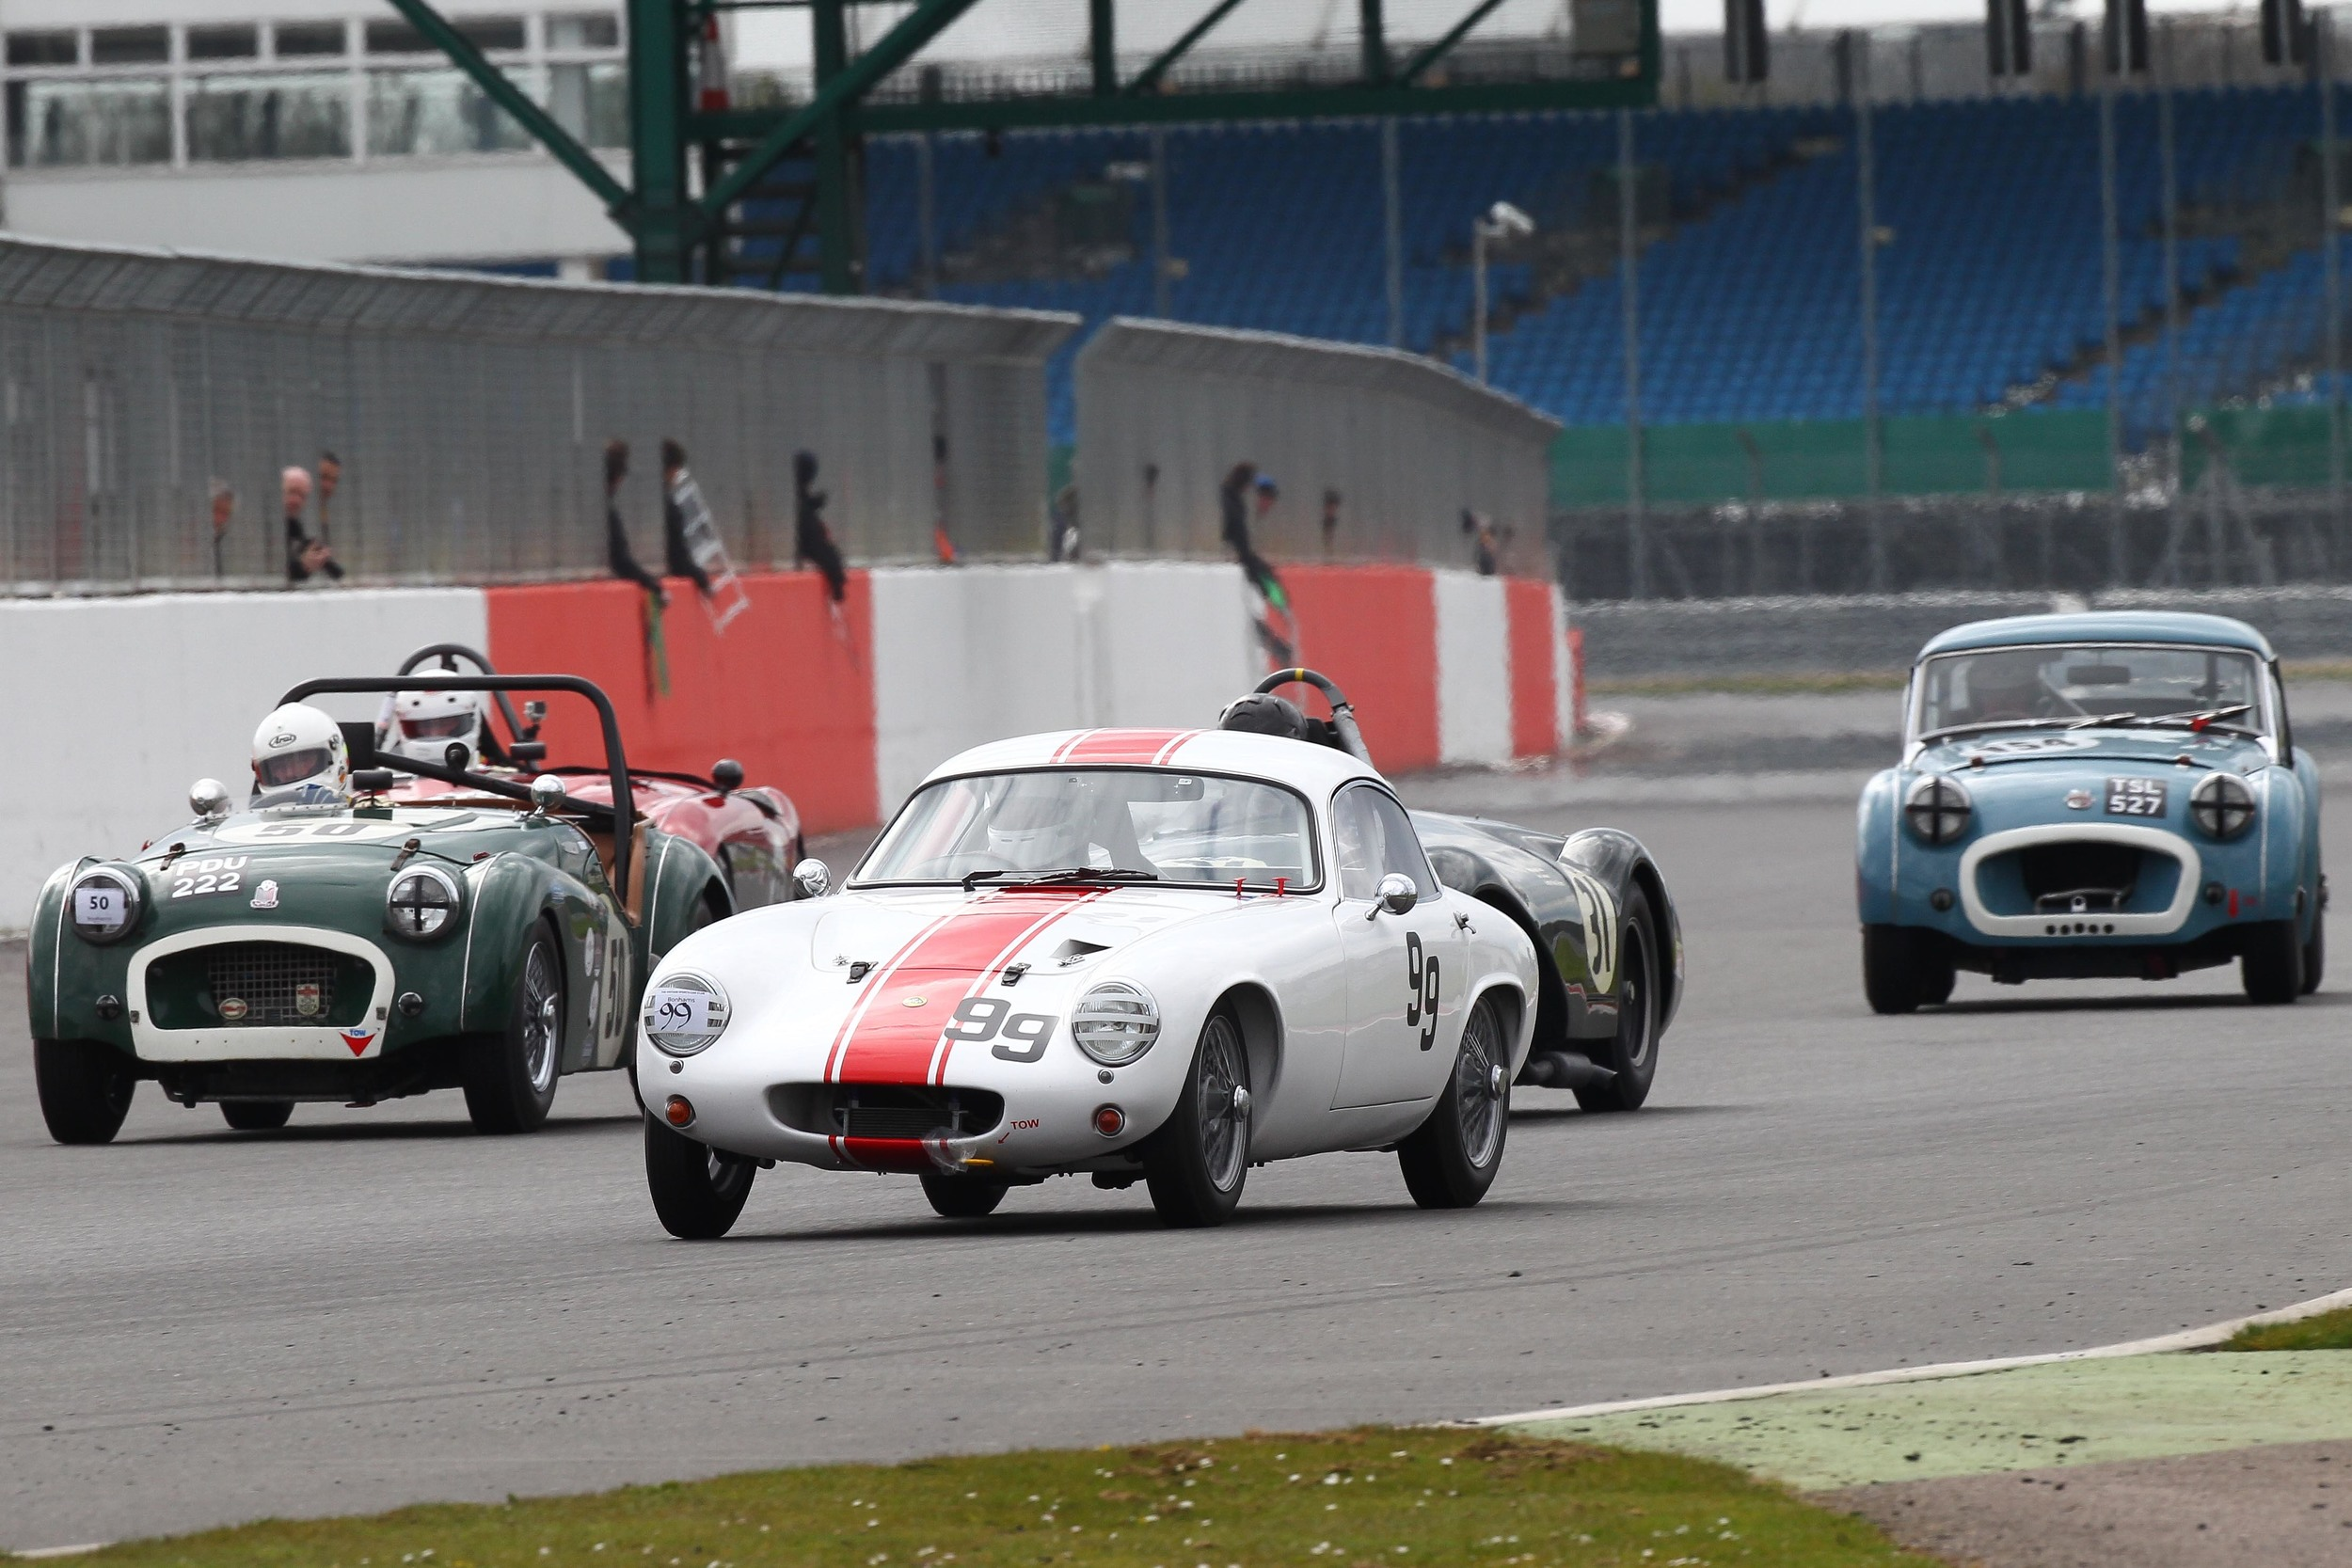 John Waterson in his Lotus Elite being surrounded                                          Photo - Richard Styles